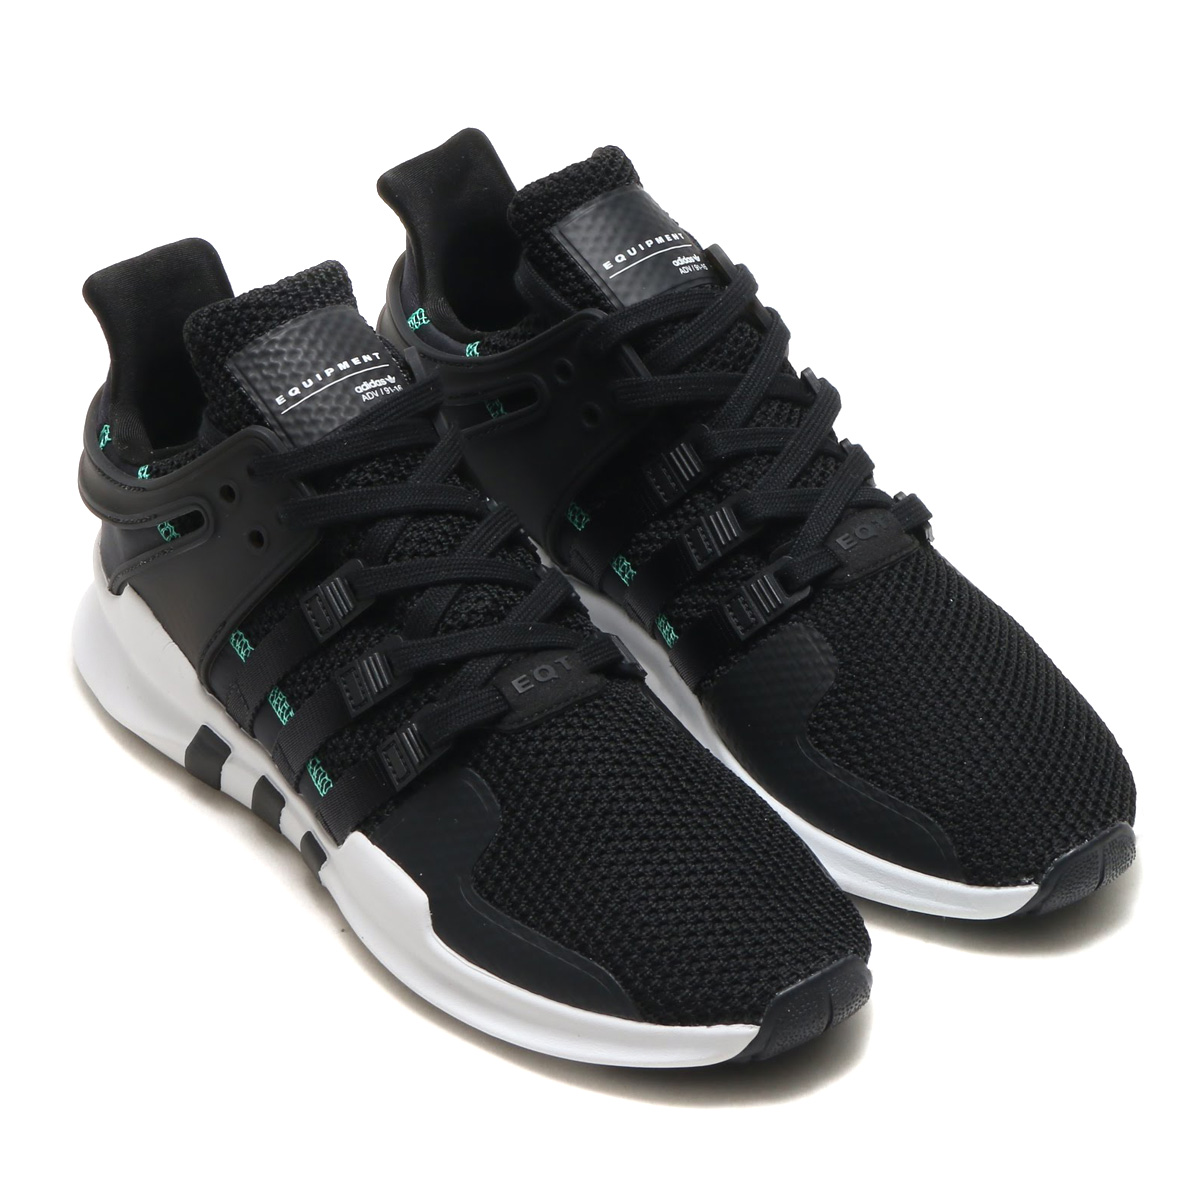 0c6772857d adidas Originals EQT SUPPORT ADV (Adidas originals E cue tea support ADV)  Core Black/Core Black/Ftwr White 18SS-I